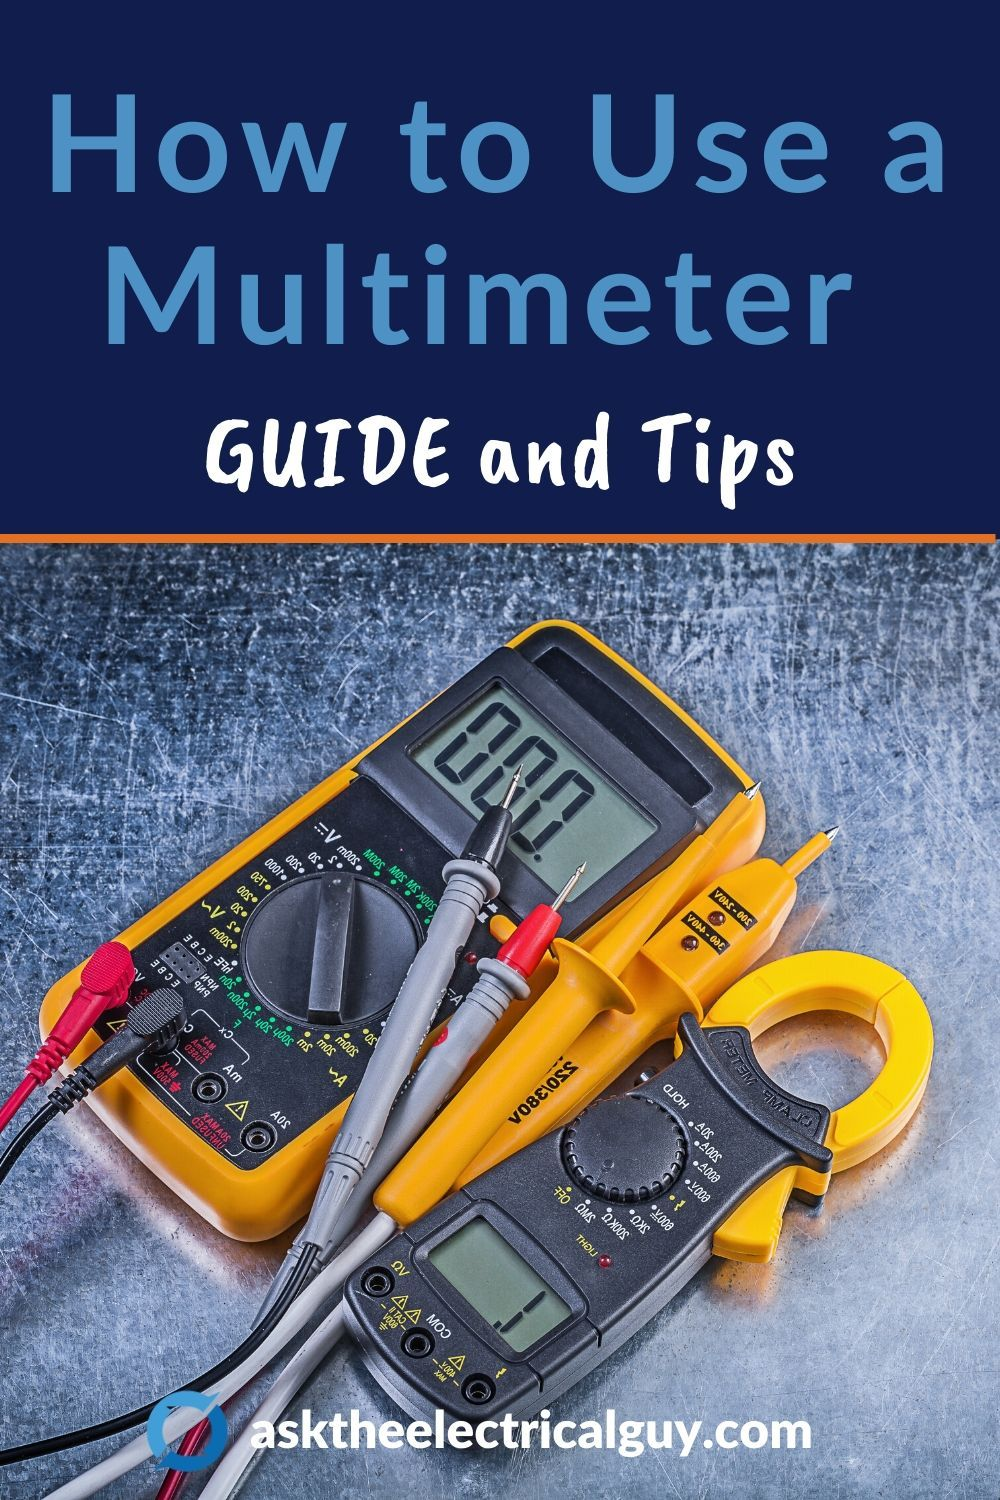 How to Use & Read a Multimeter